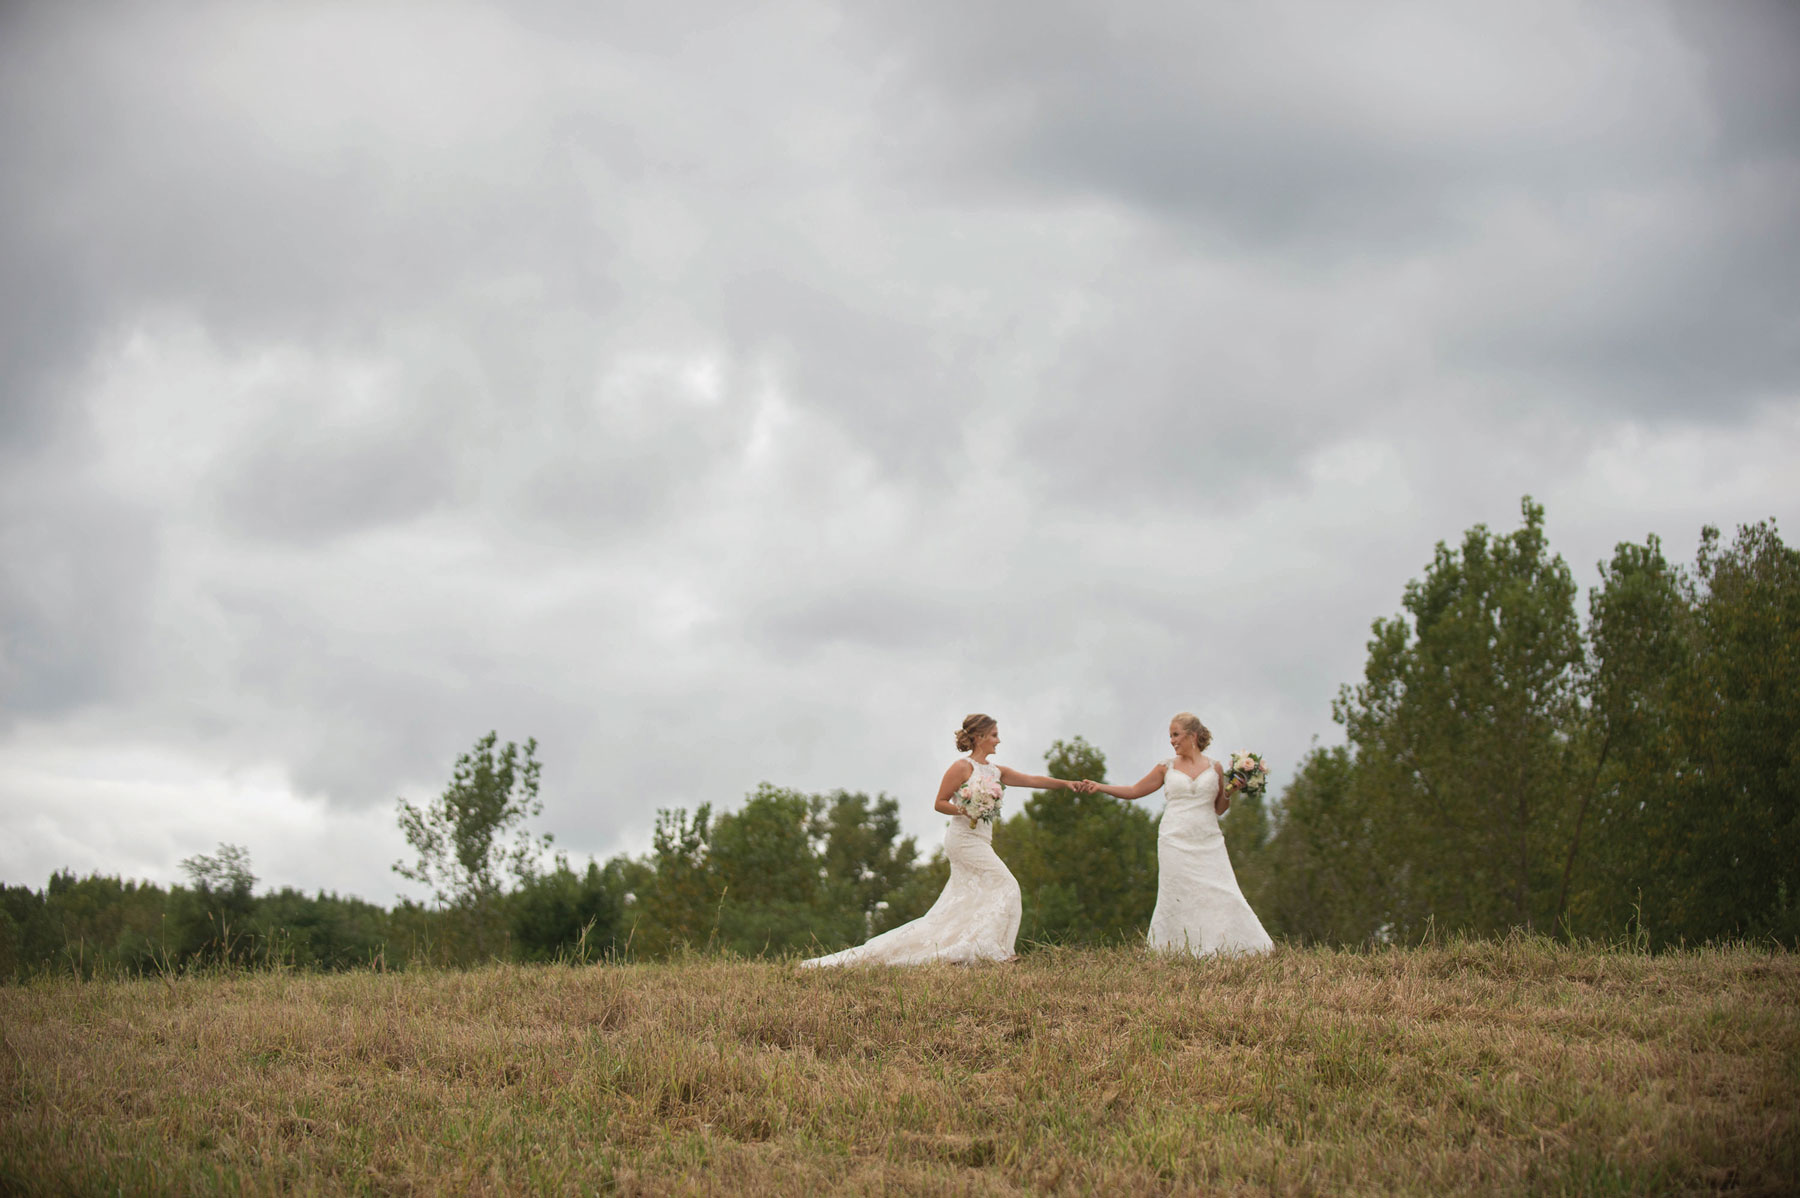 Sarah + Jenna - A setup that leads to a happily ever after for these two.